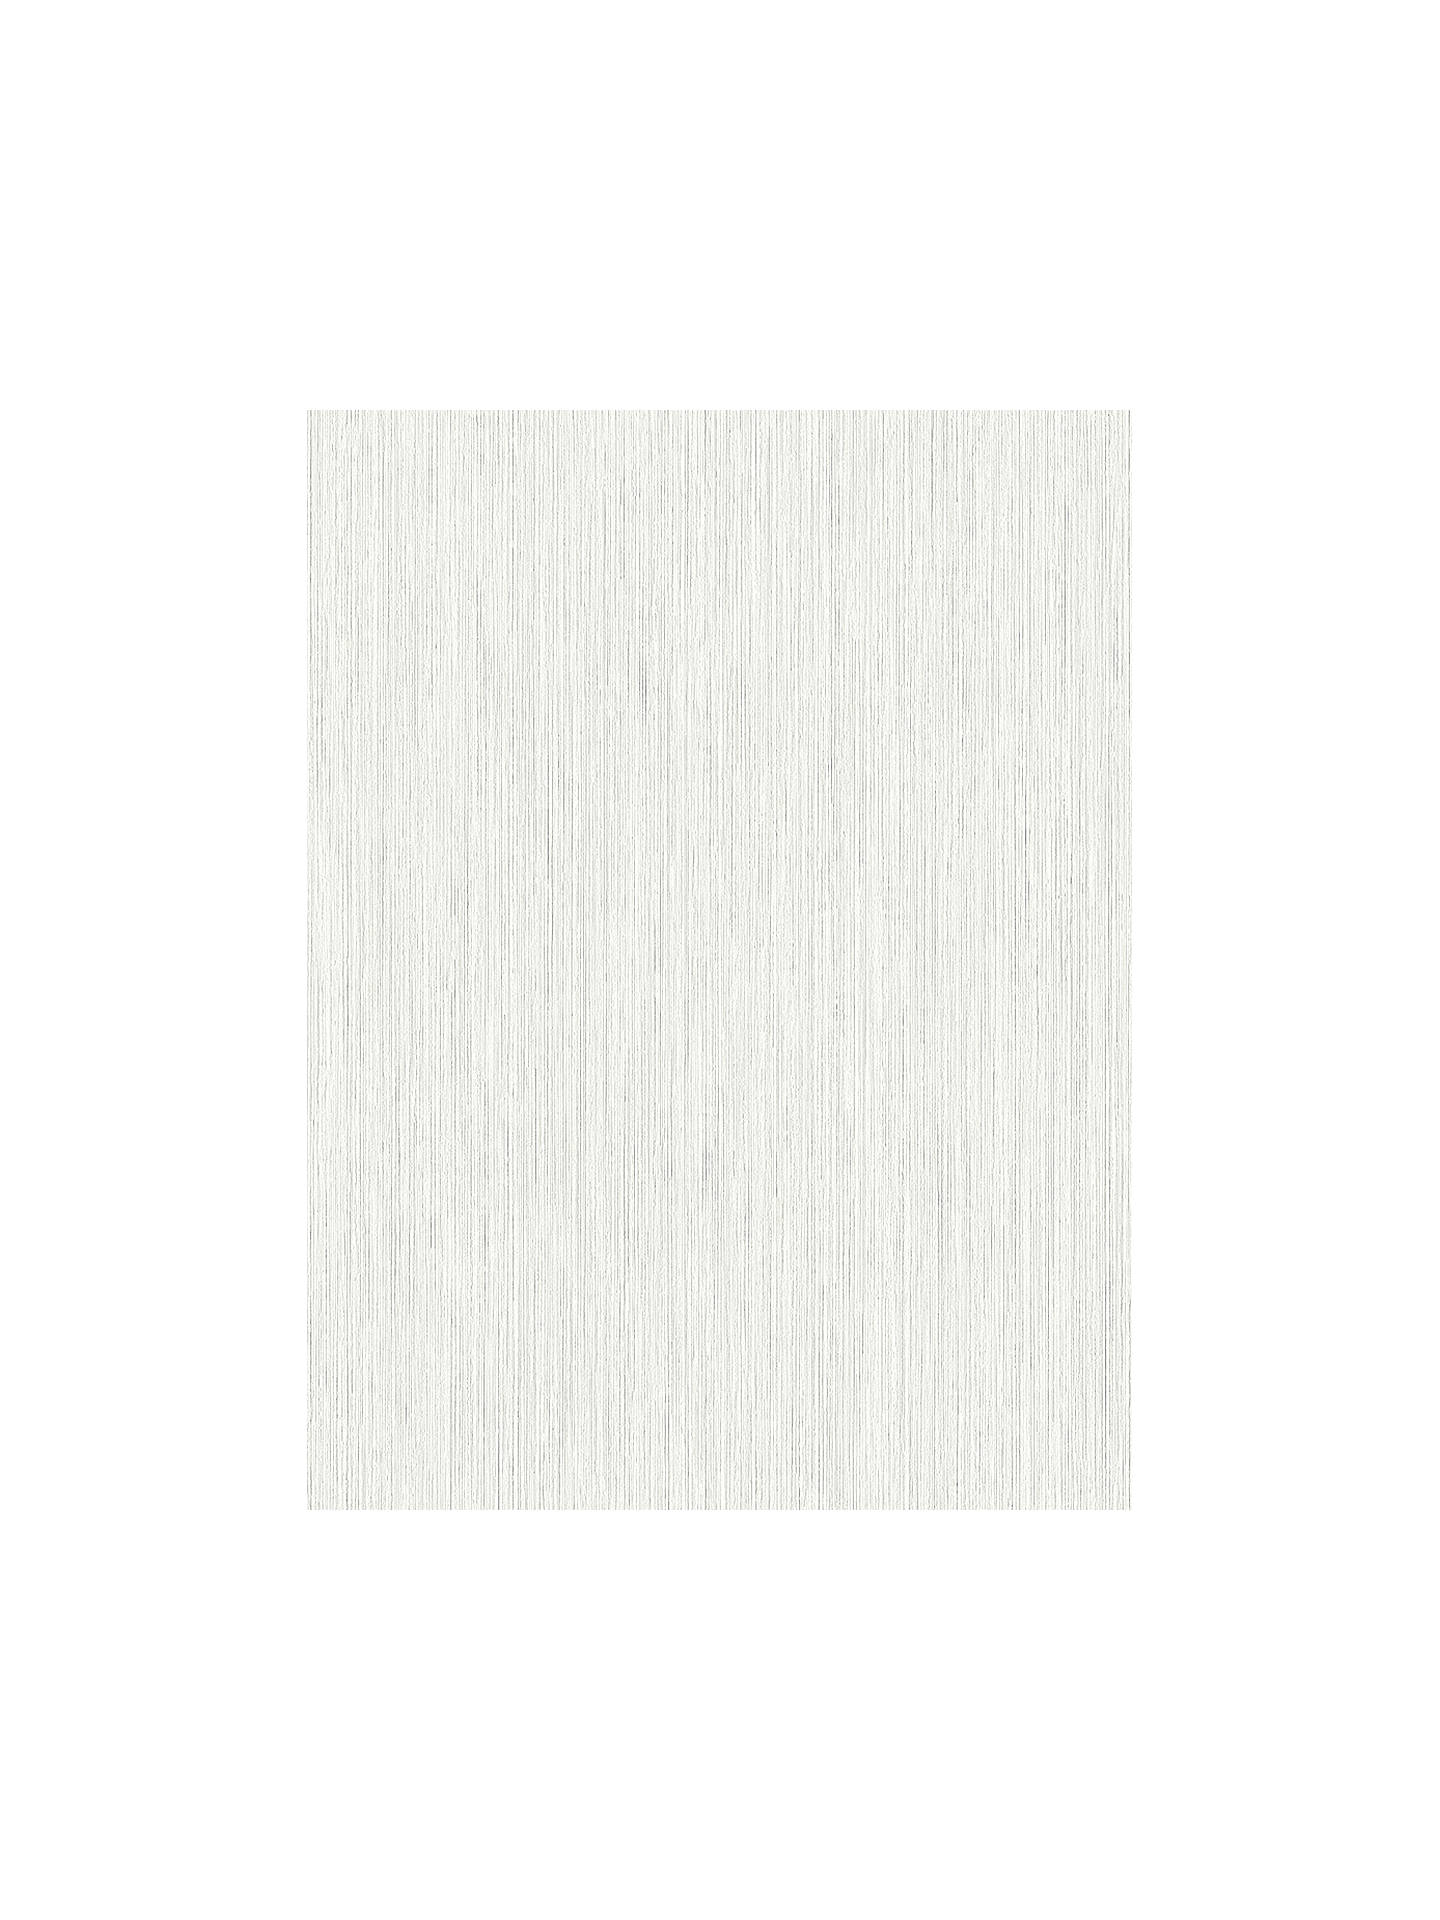 BuyGalerie Fluted Wallpaper, 781427 Online at johnlewis.com